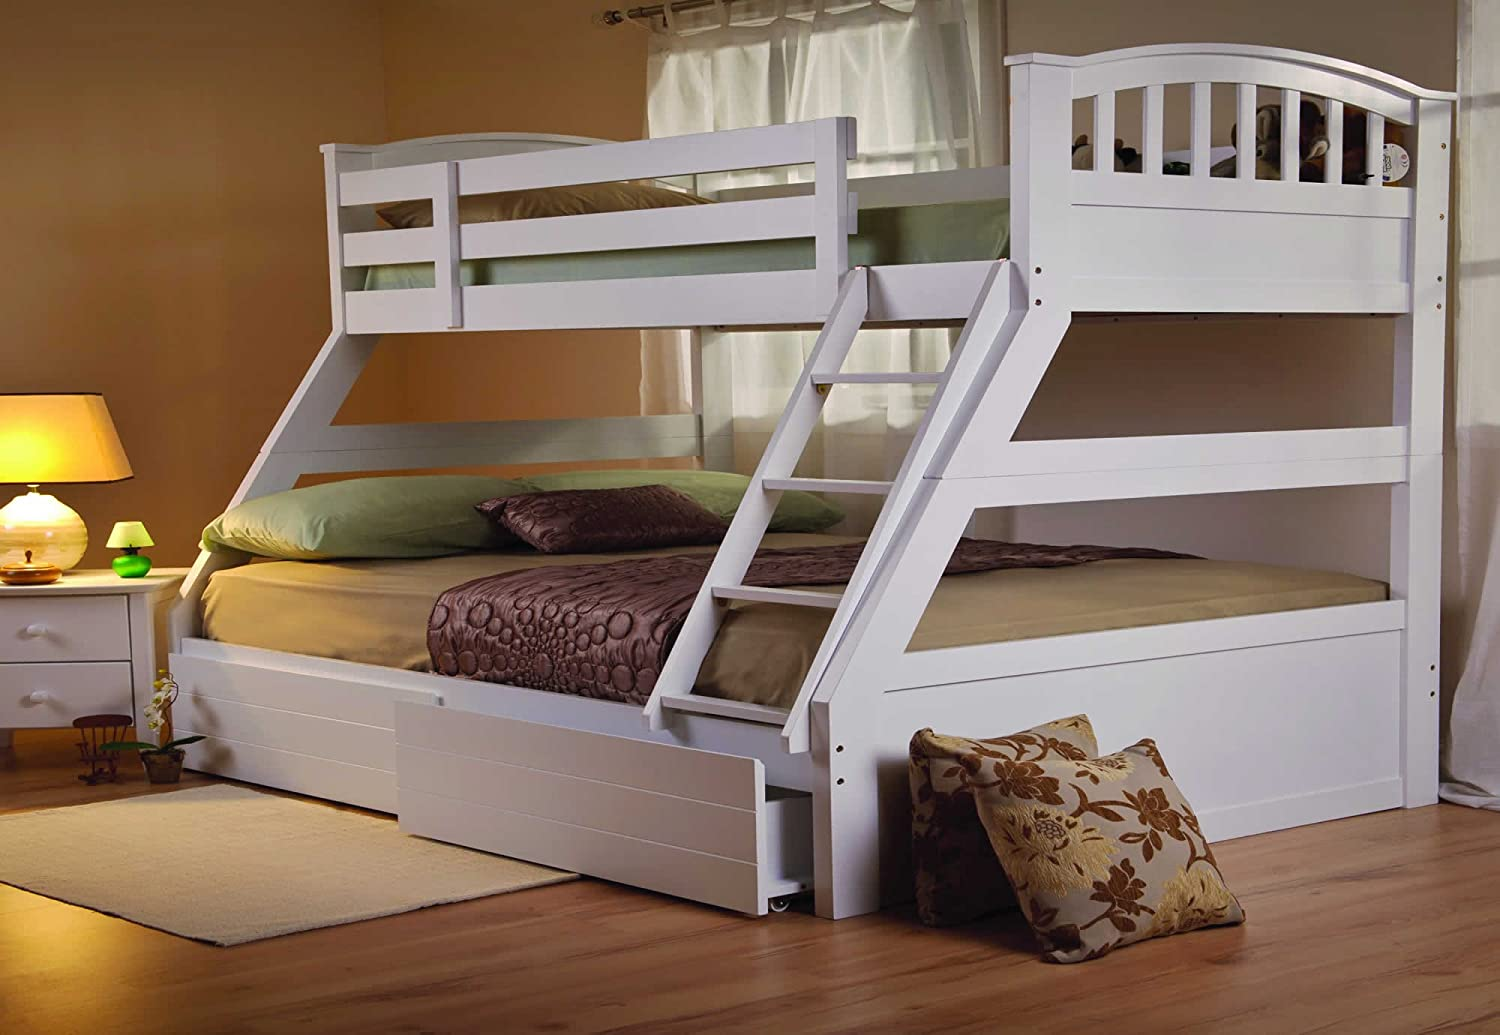 king size beds frame stock cheap furniture dimensions bunk new ideas of mattress twin with walmart